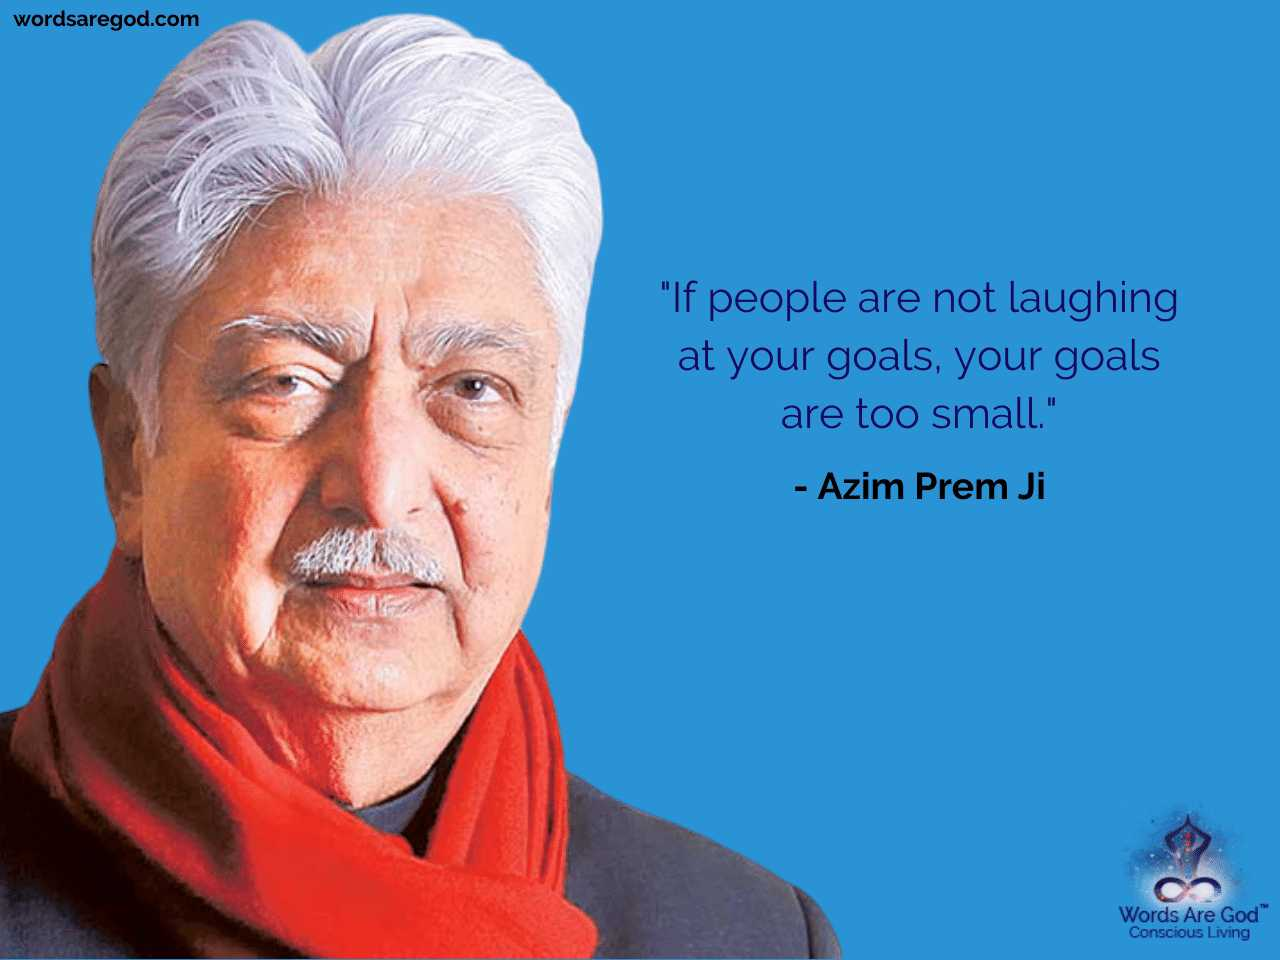 Azim Prem Ji Motivational Quote